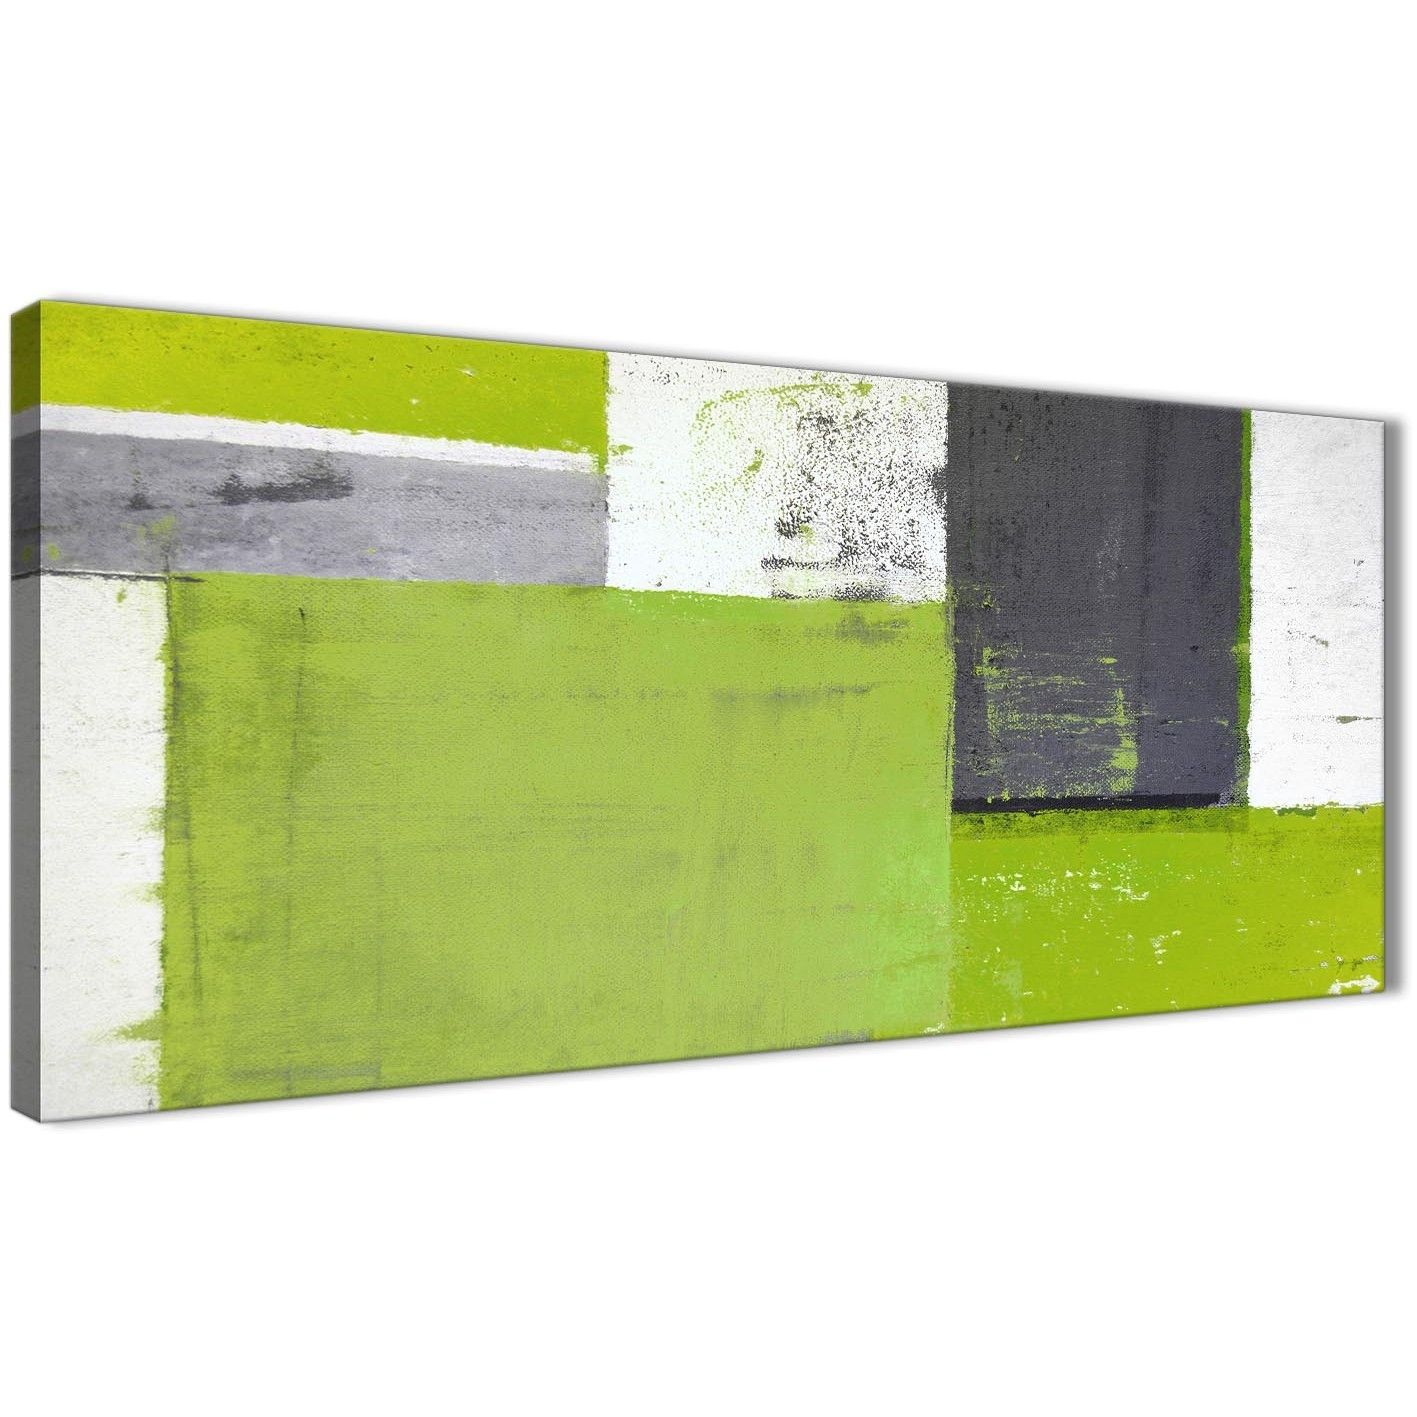 Lime Green Grey Abstract Painting Canvas Wall Art Print – Modern With Regard To Current Lime Green Abstract Wall Art (View 2 of 20)